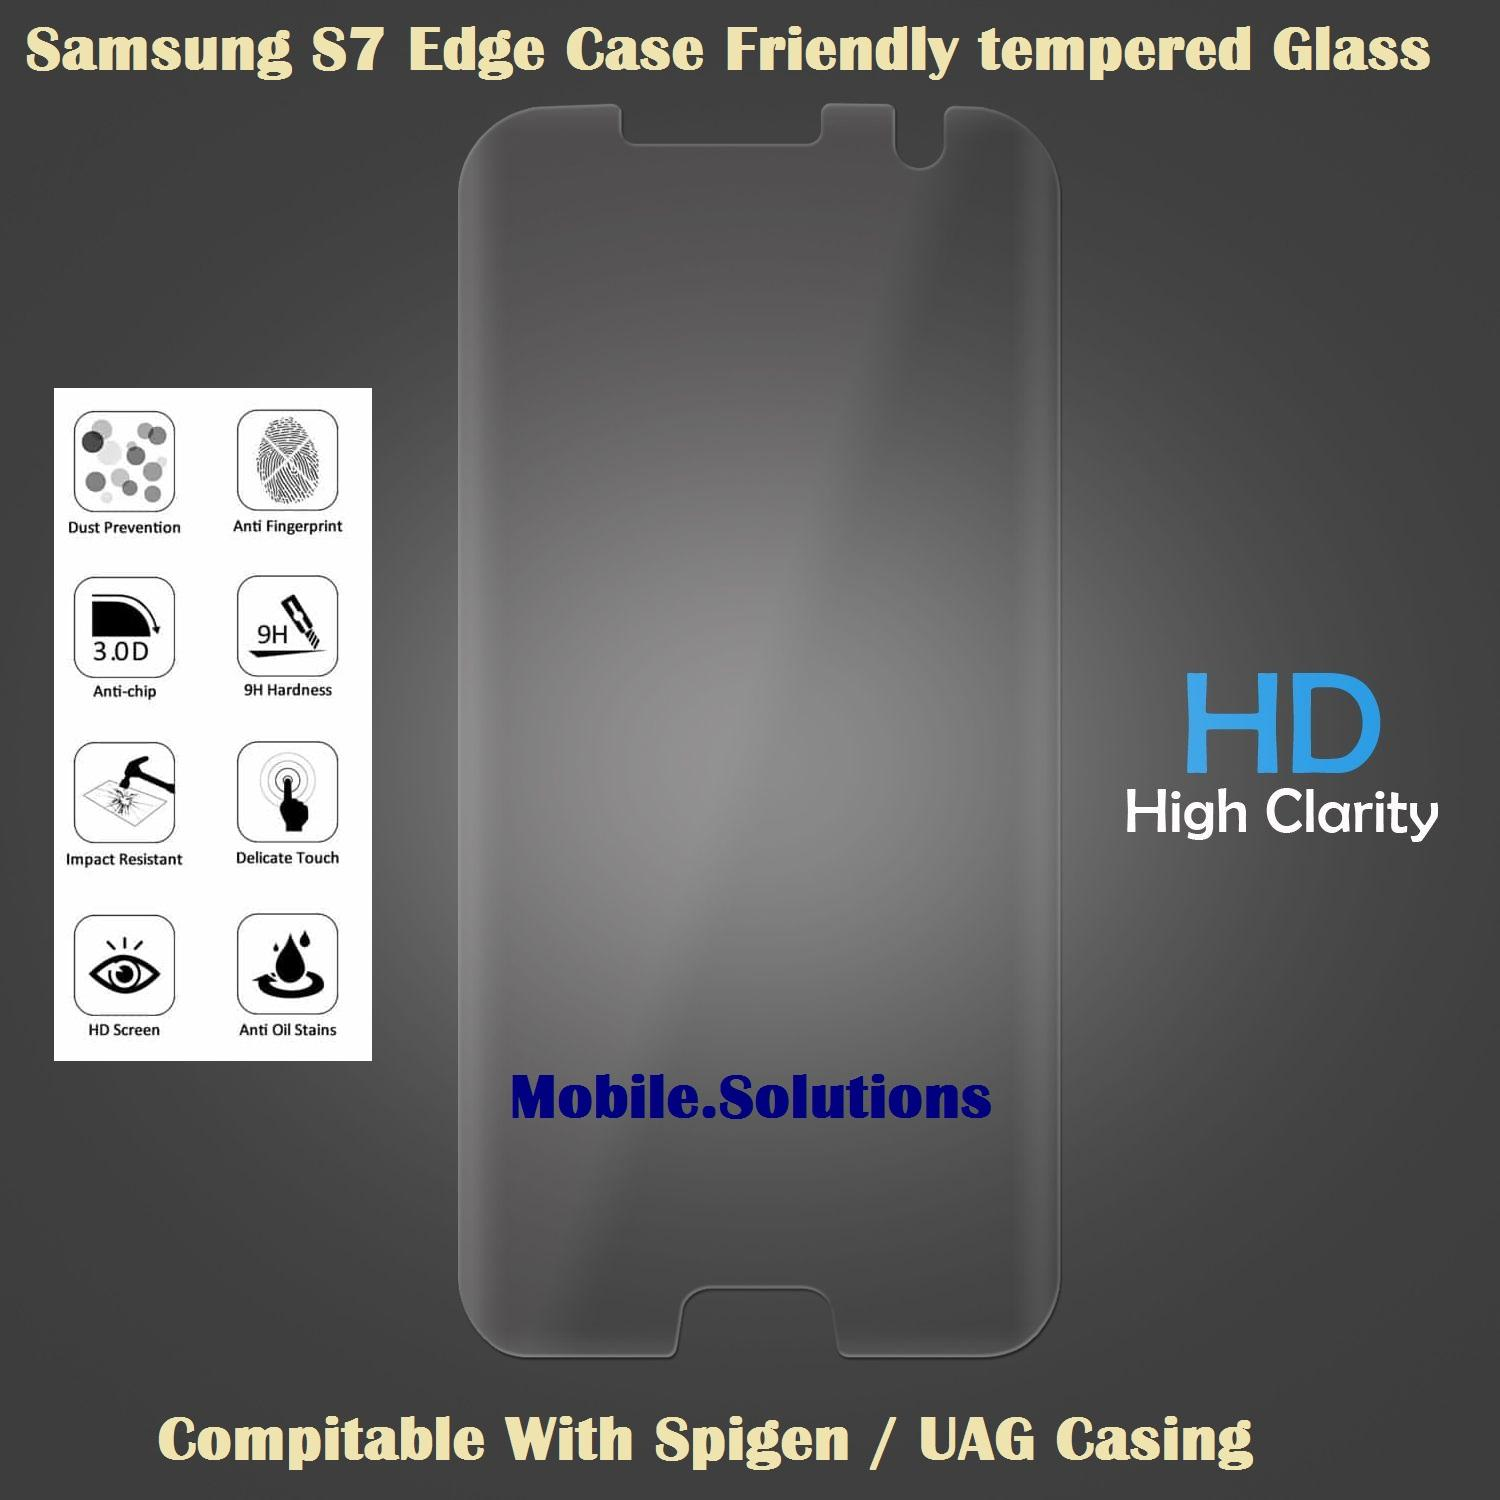 Where Can I Buy Samsung S7 Edge Full Coverage Tempered Glass Case Friendly Clear